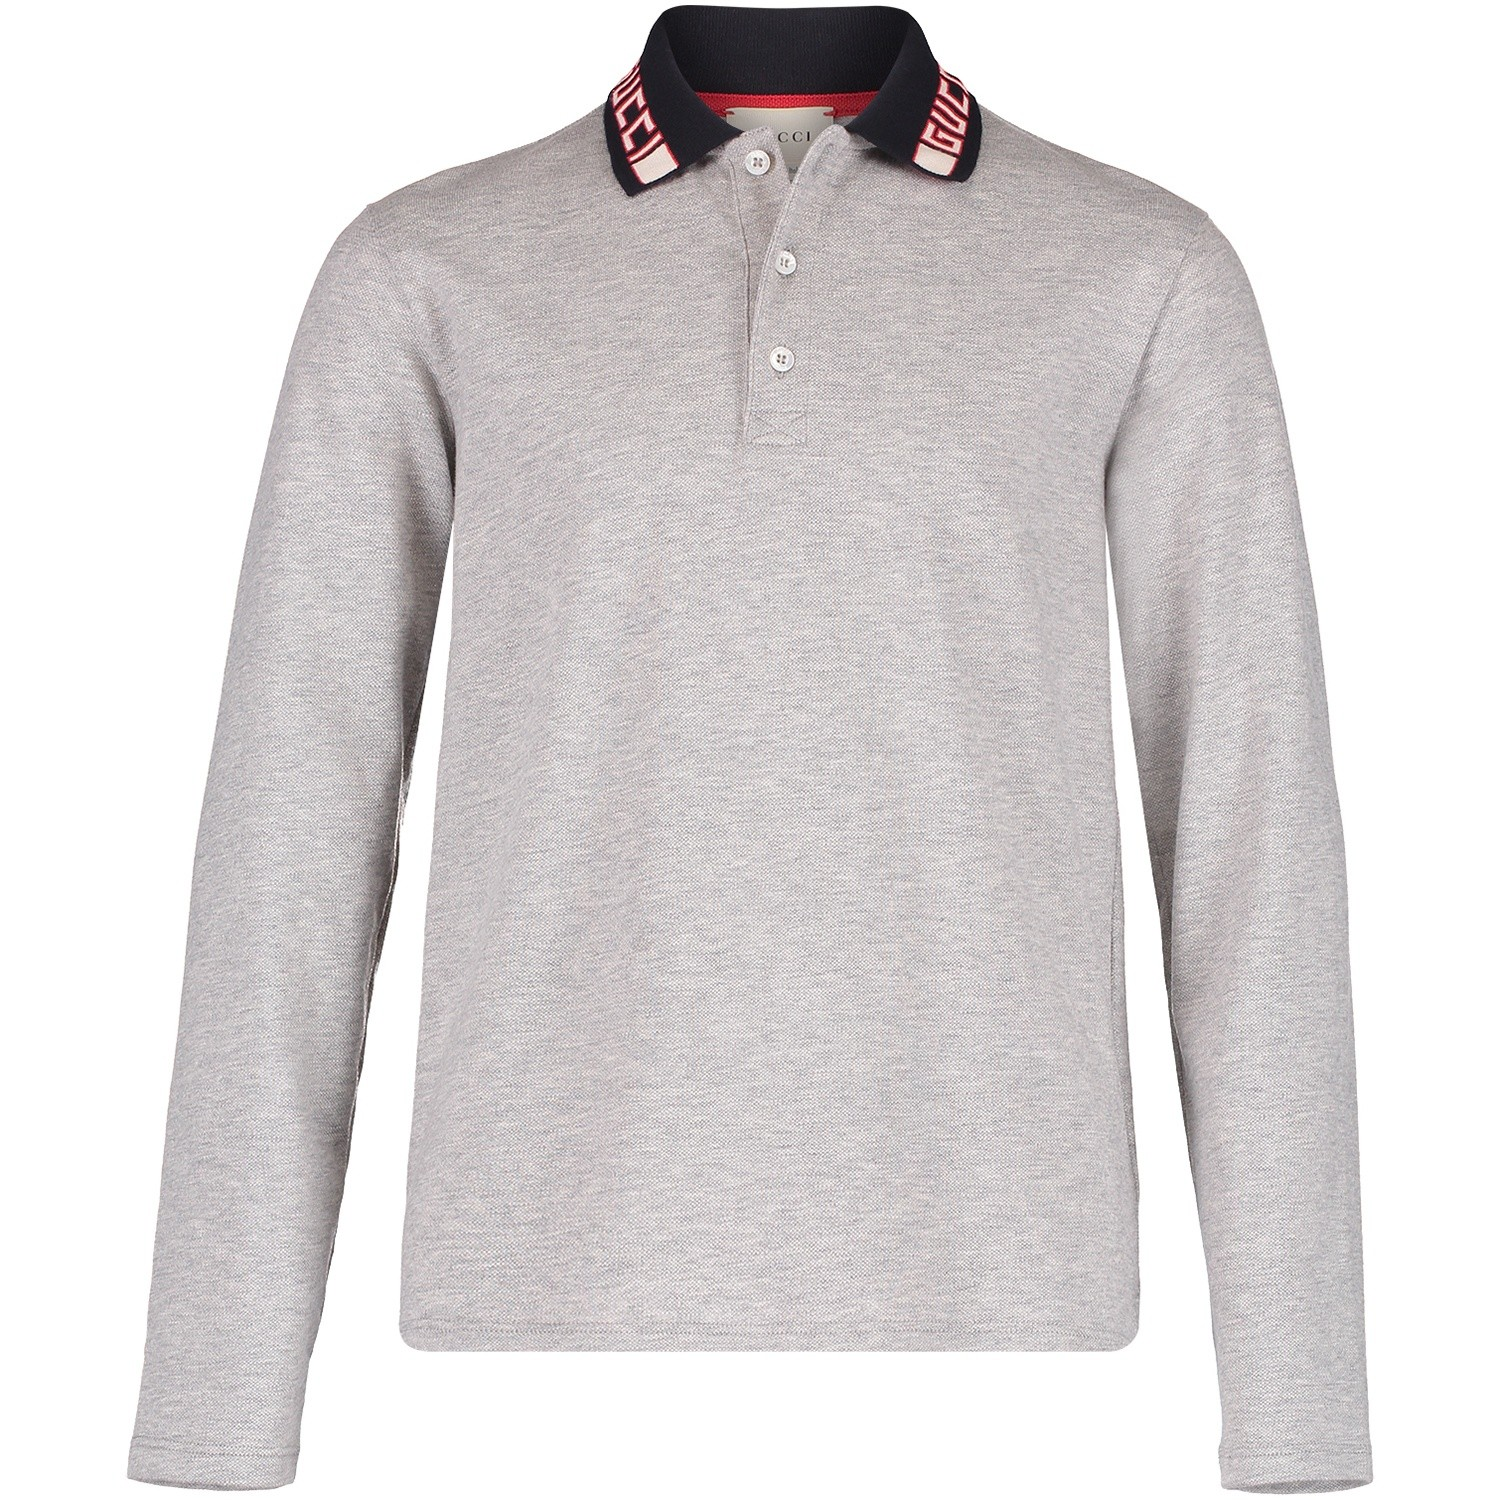 Picture of Gucci 533011 kids polo shirt grey 5c643b9b3bc